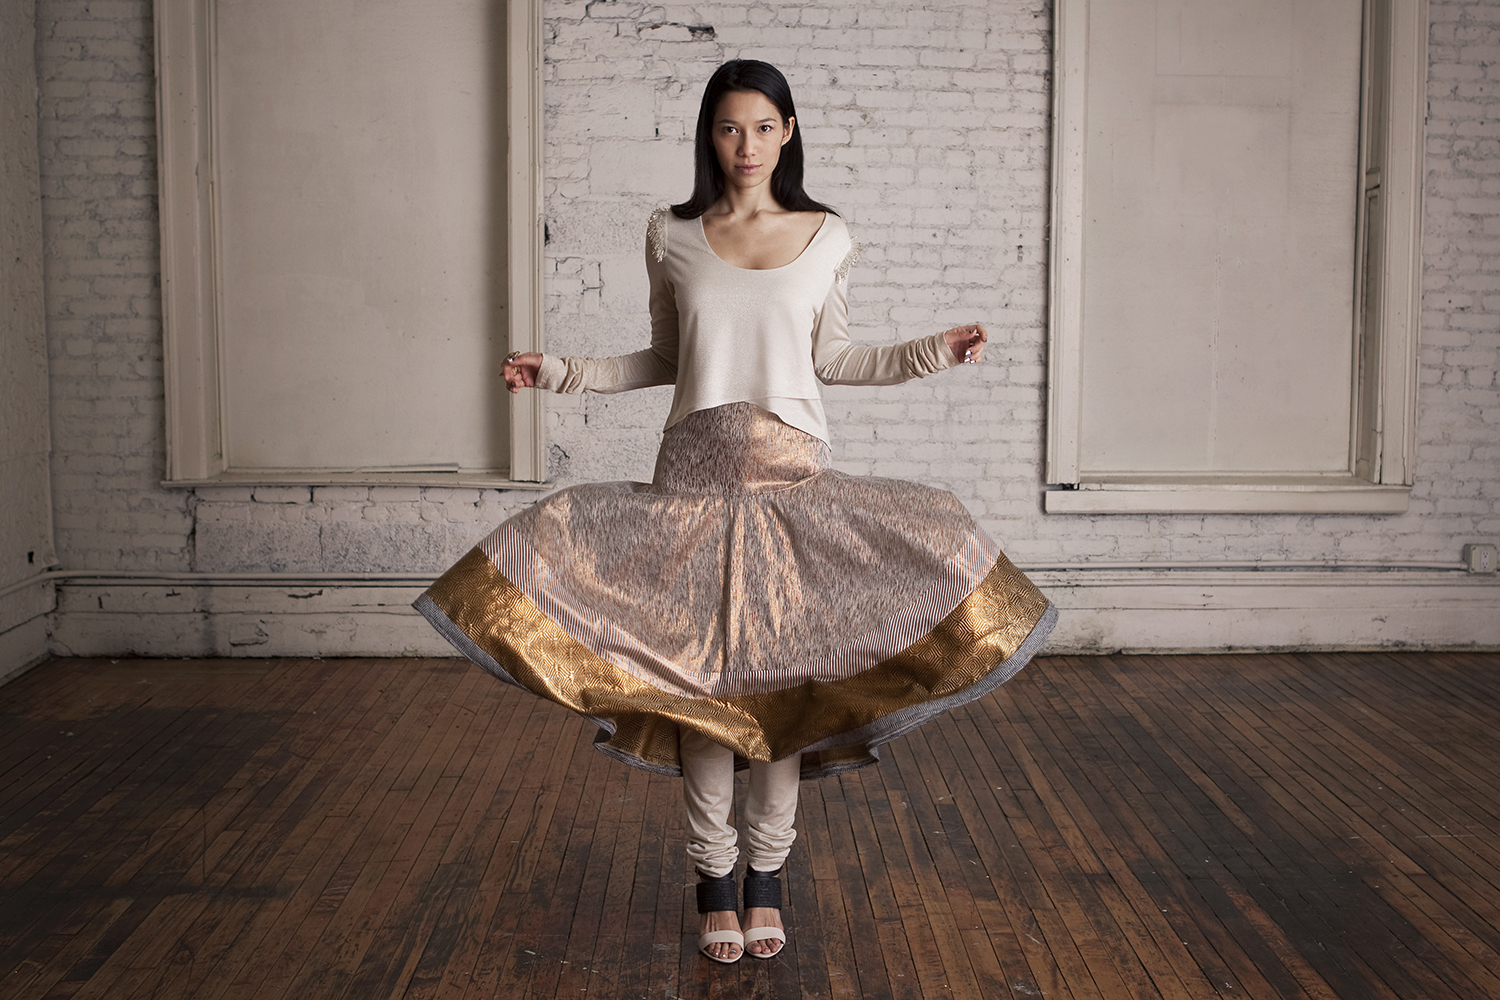 Beaded Wrap Top, Golden Circle Skirt, Churidar Leggings